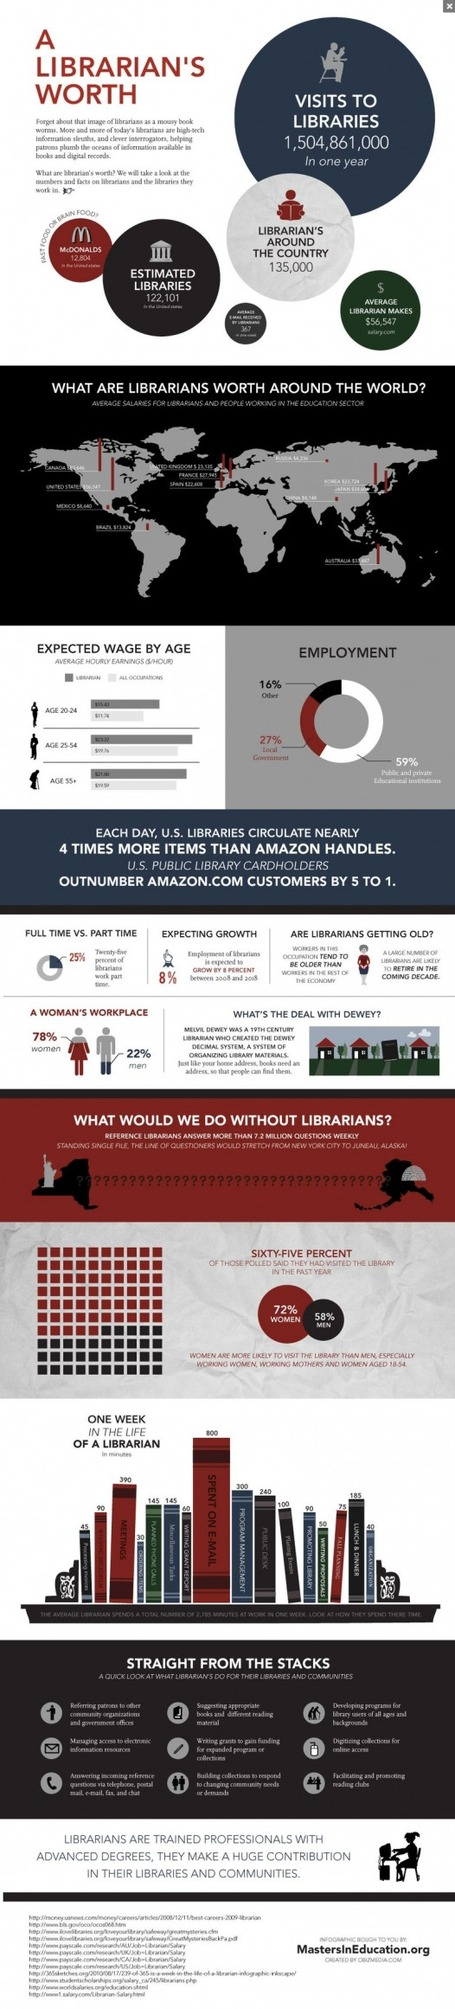 What are librarians worth around the world #Infographic | Professional development of Librarians | Scoop.it